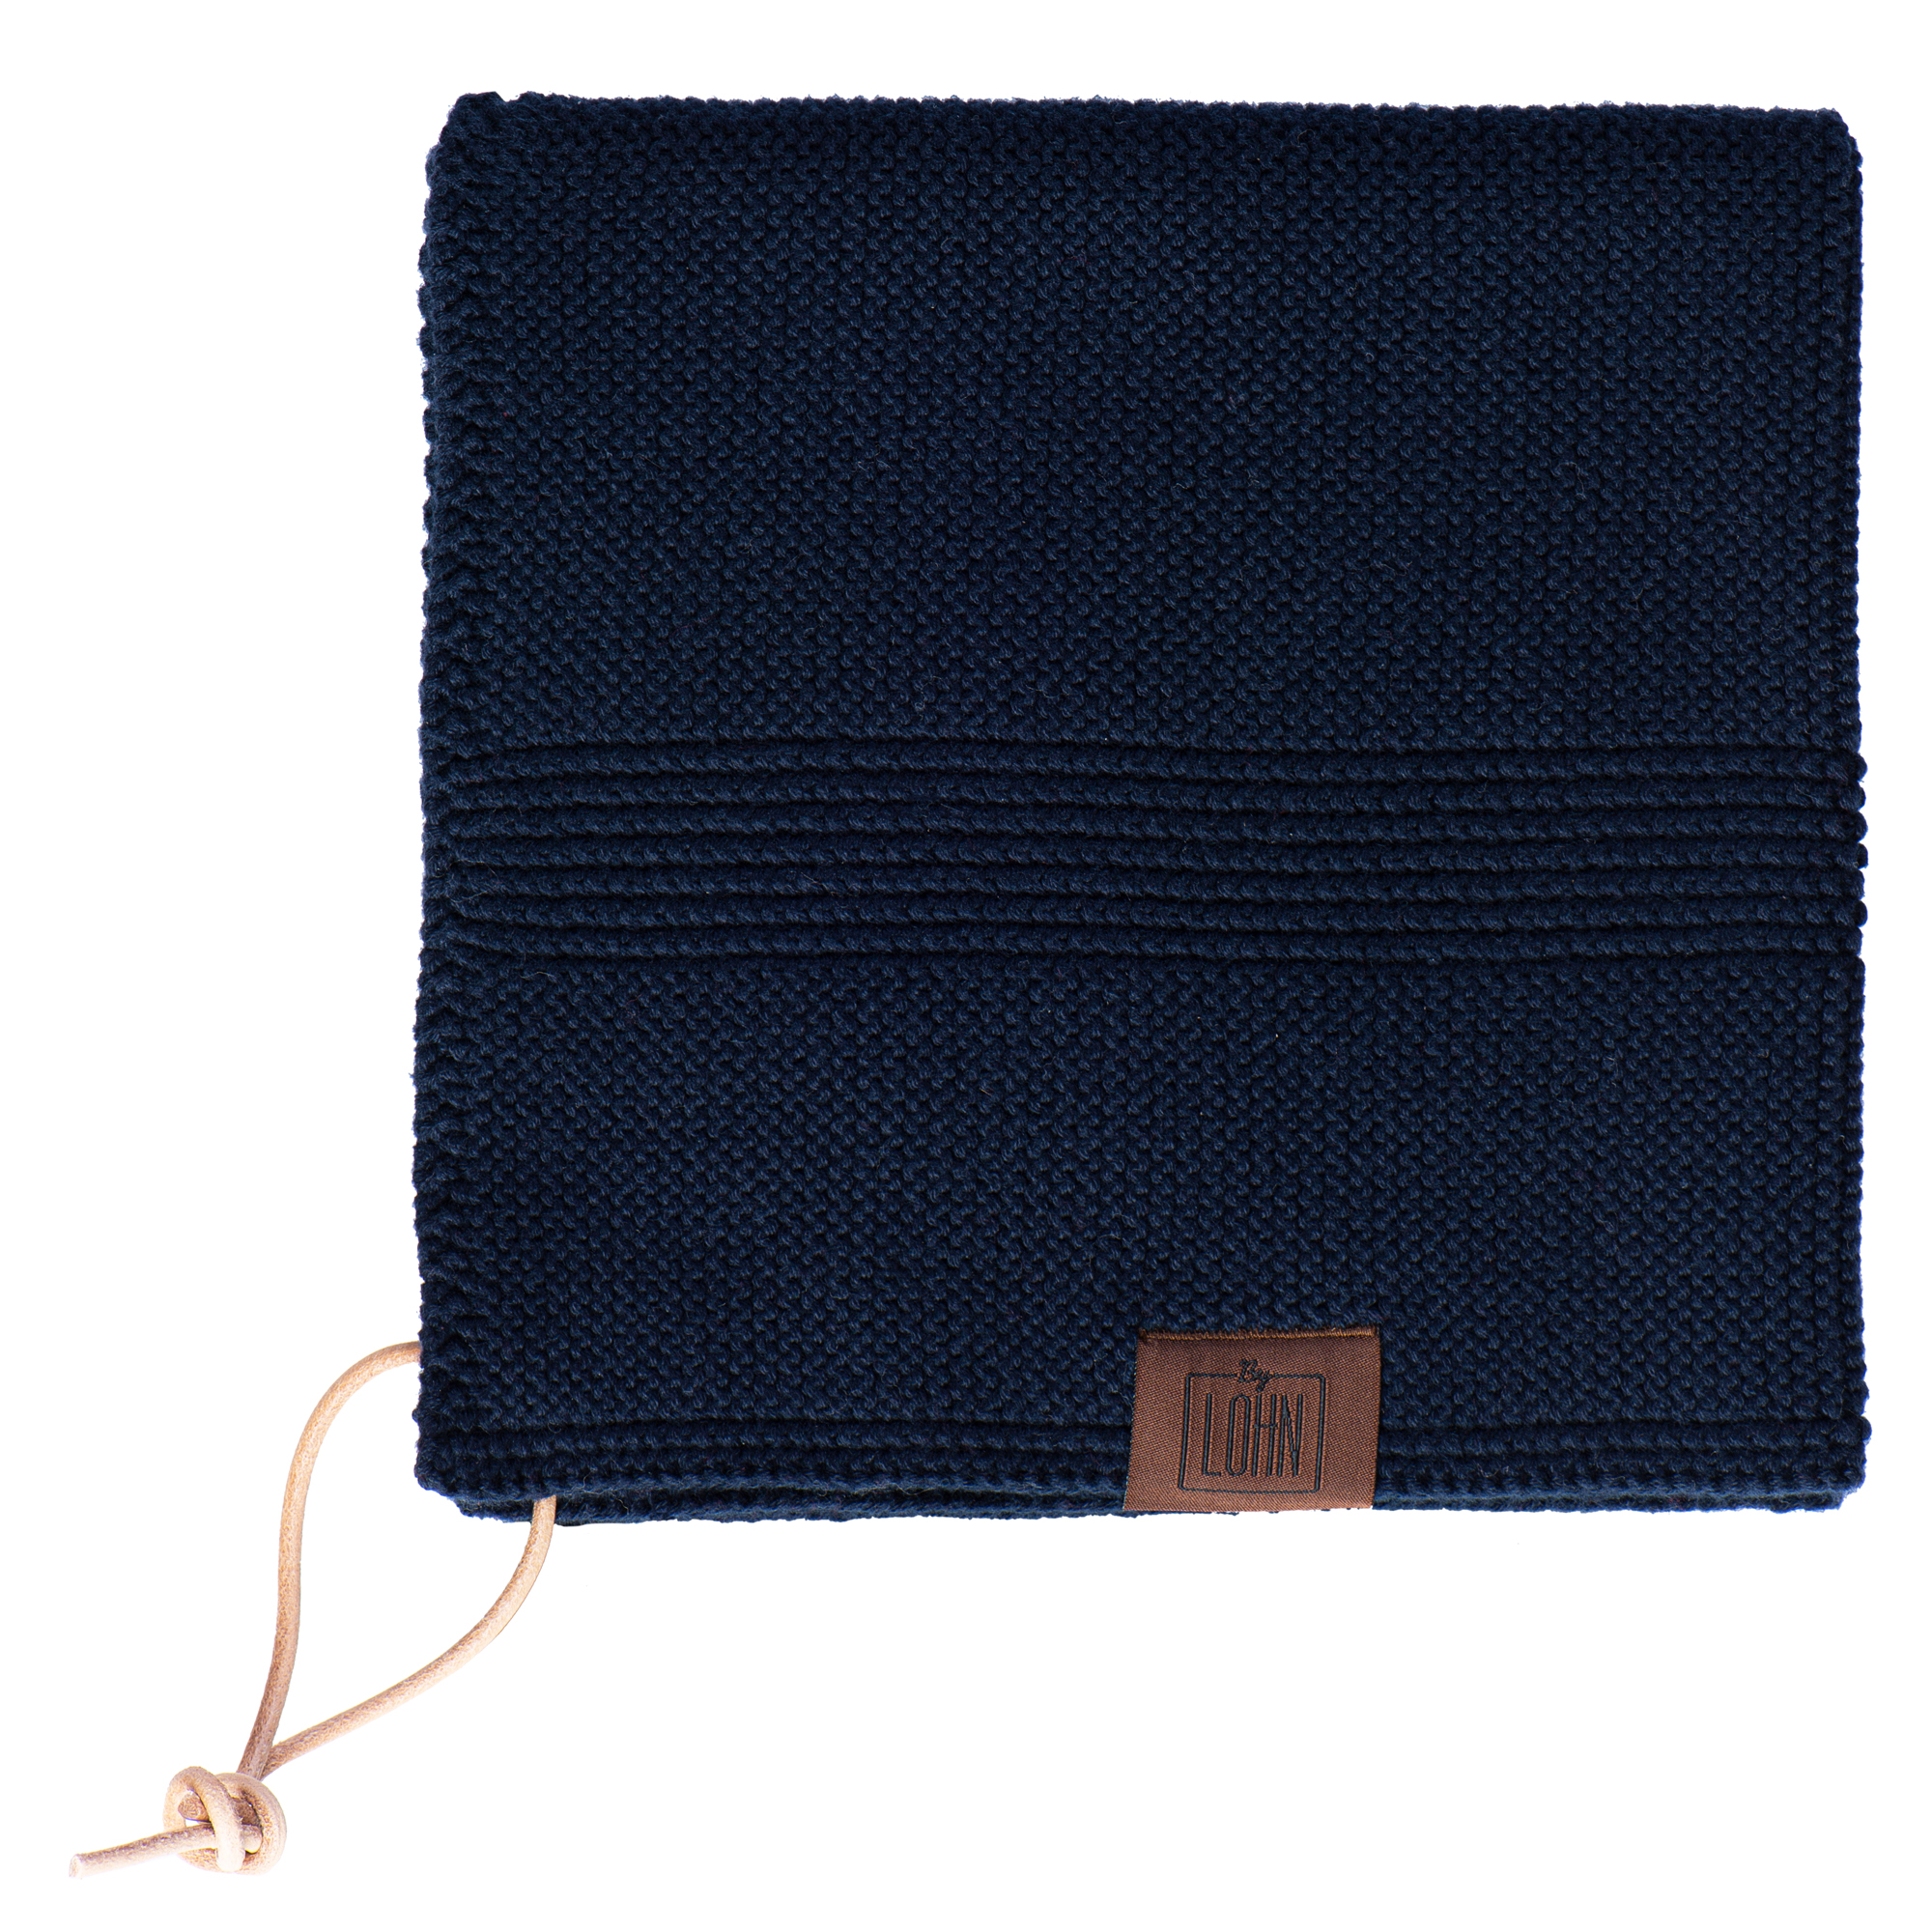 By LOHN – All round towel 35 x 35 cm, Navy